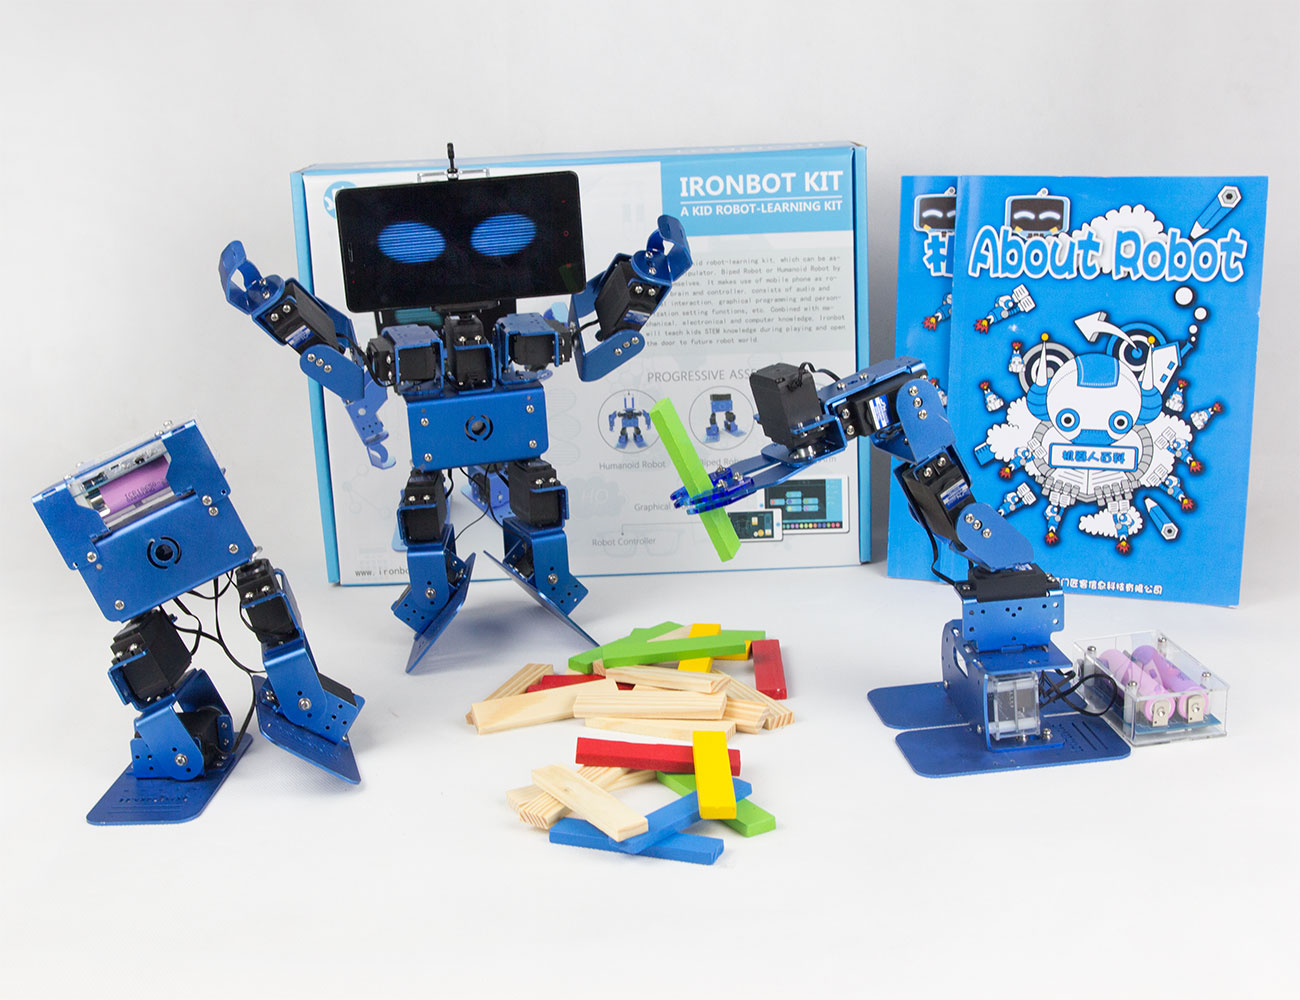 IronBot – DIY Robot Learning Kit for Kids